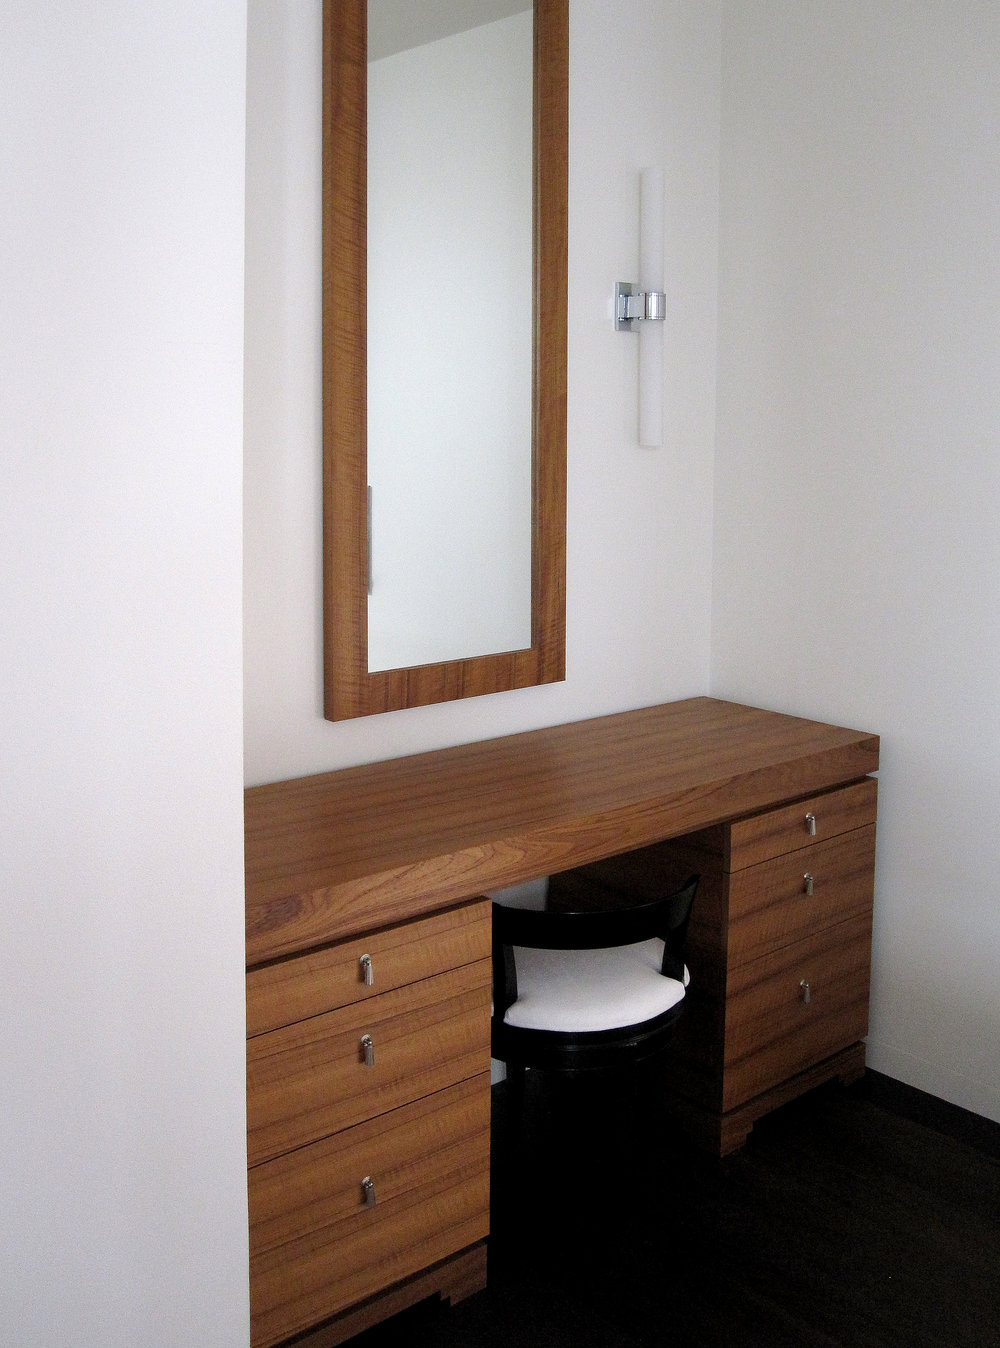 Solid teak vanity desk with matching teak mirror  Commissioned by CardenCunietti for a private client.